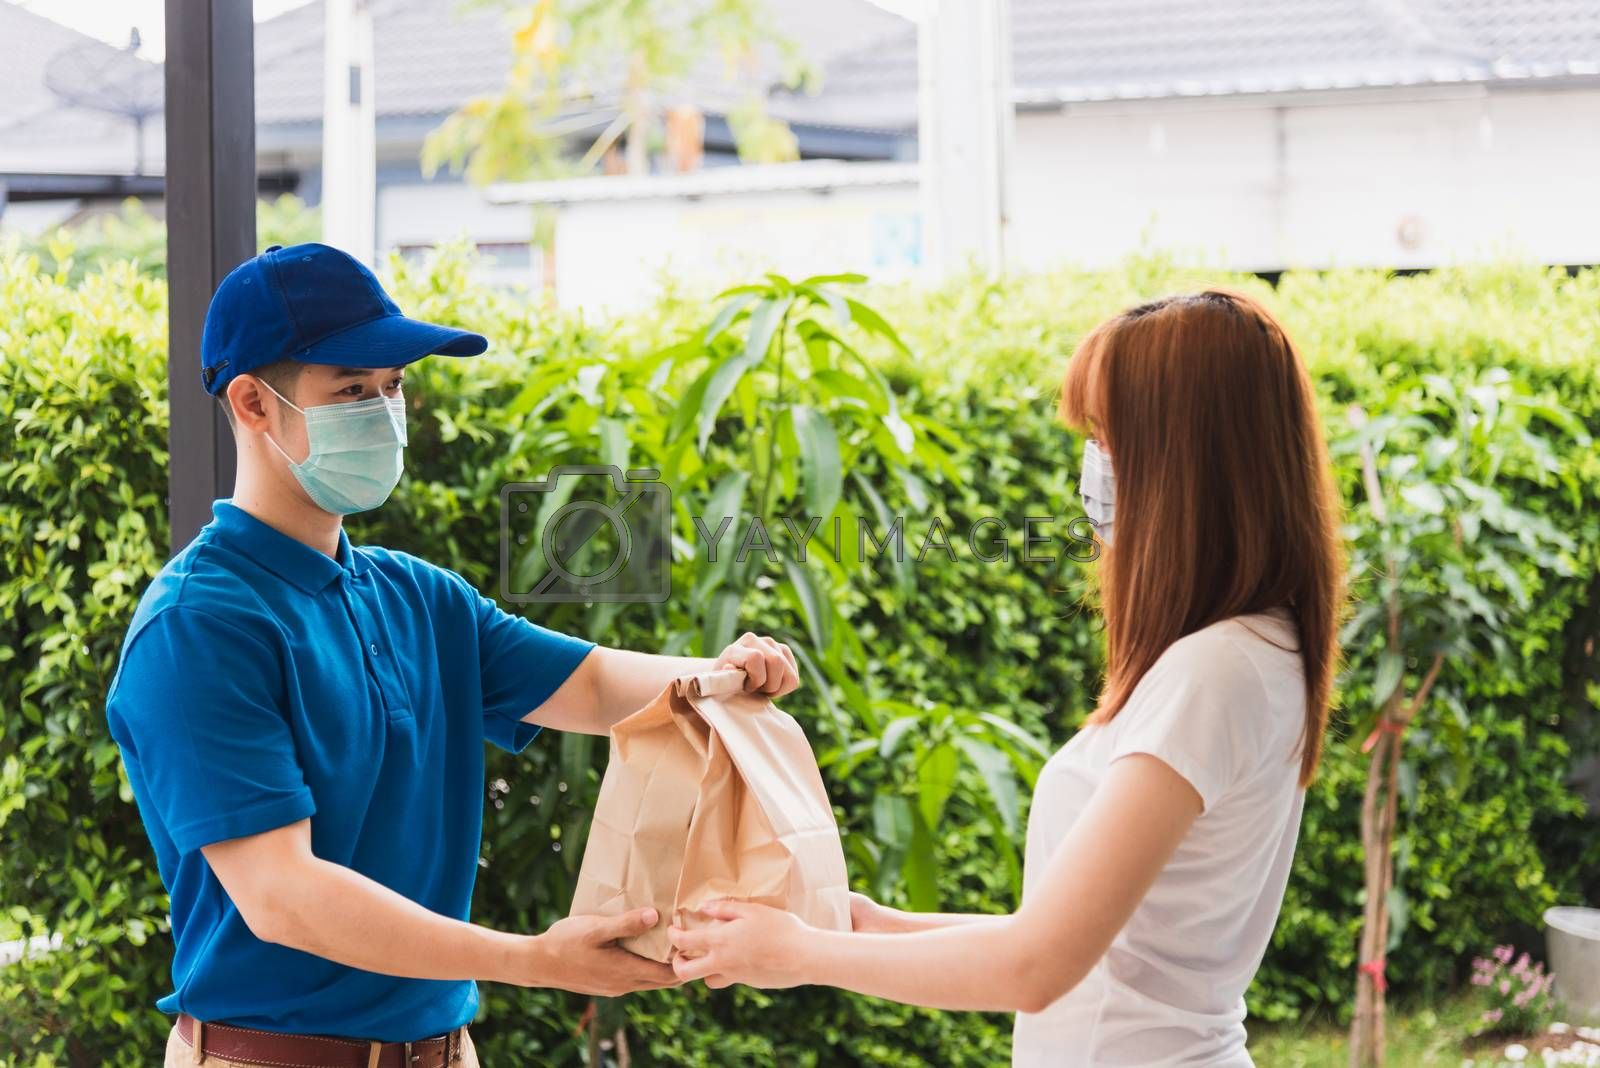 Asian delivery express courier young man giving paper bags fast food to woman customer receiving both protective face mask, under curfew quarantine pandemic coronavirus COVID-19